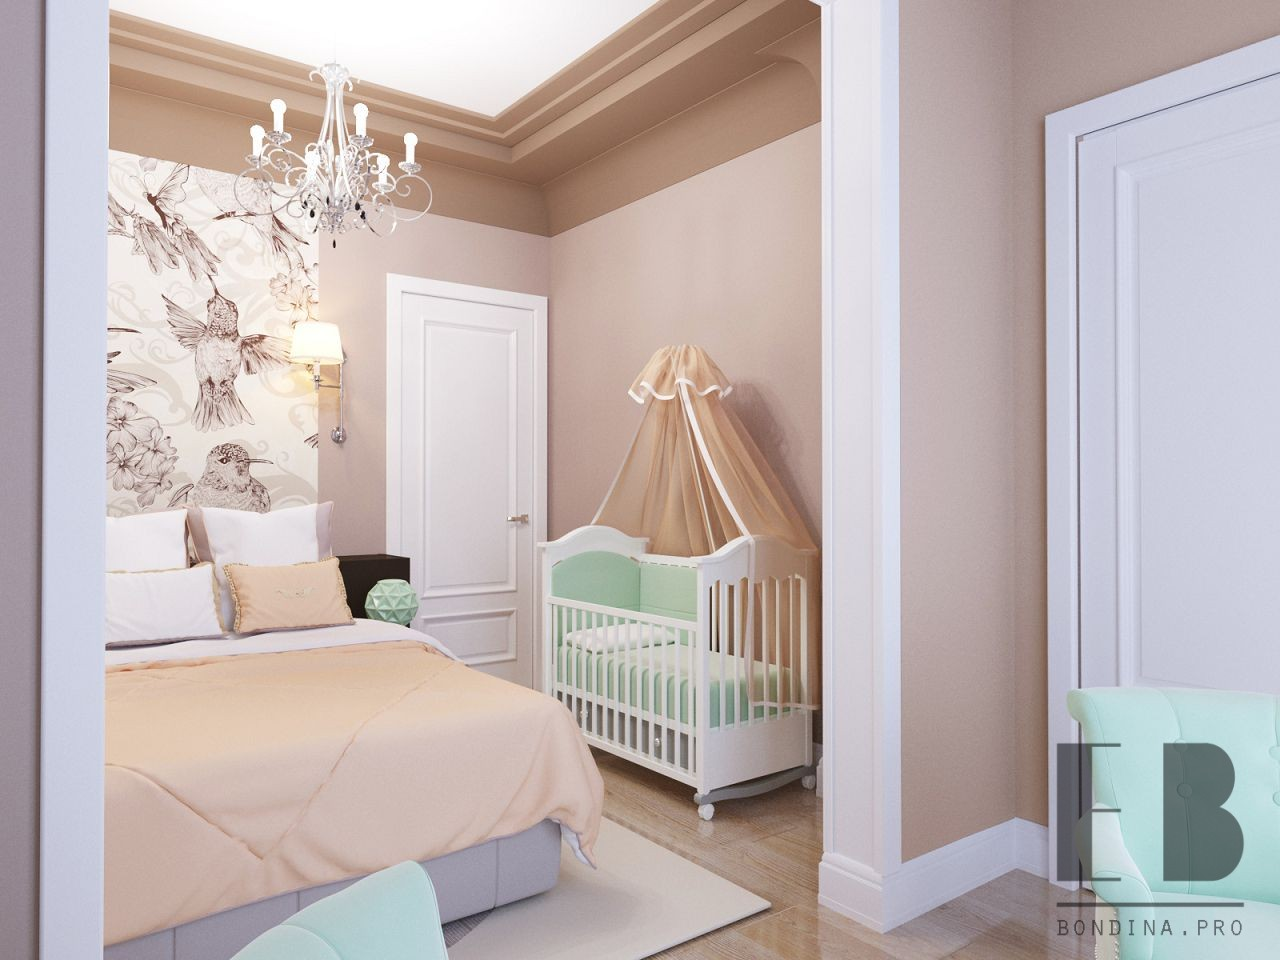 Bright bedroom design for parents and baby